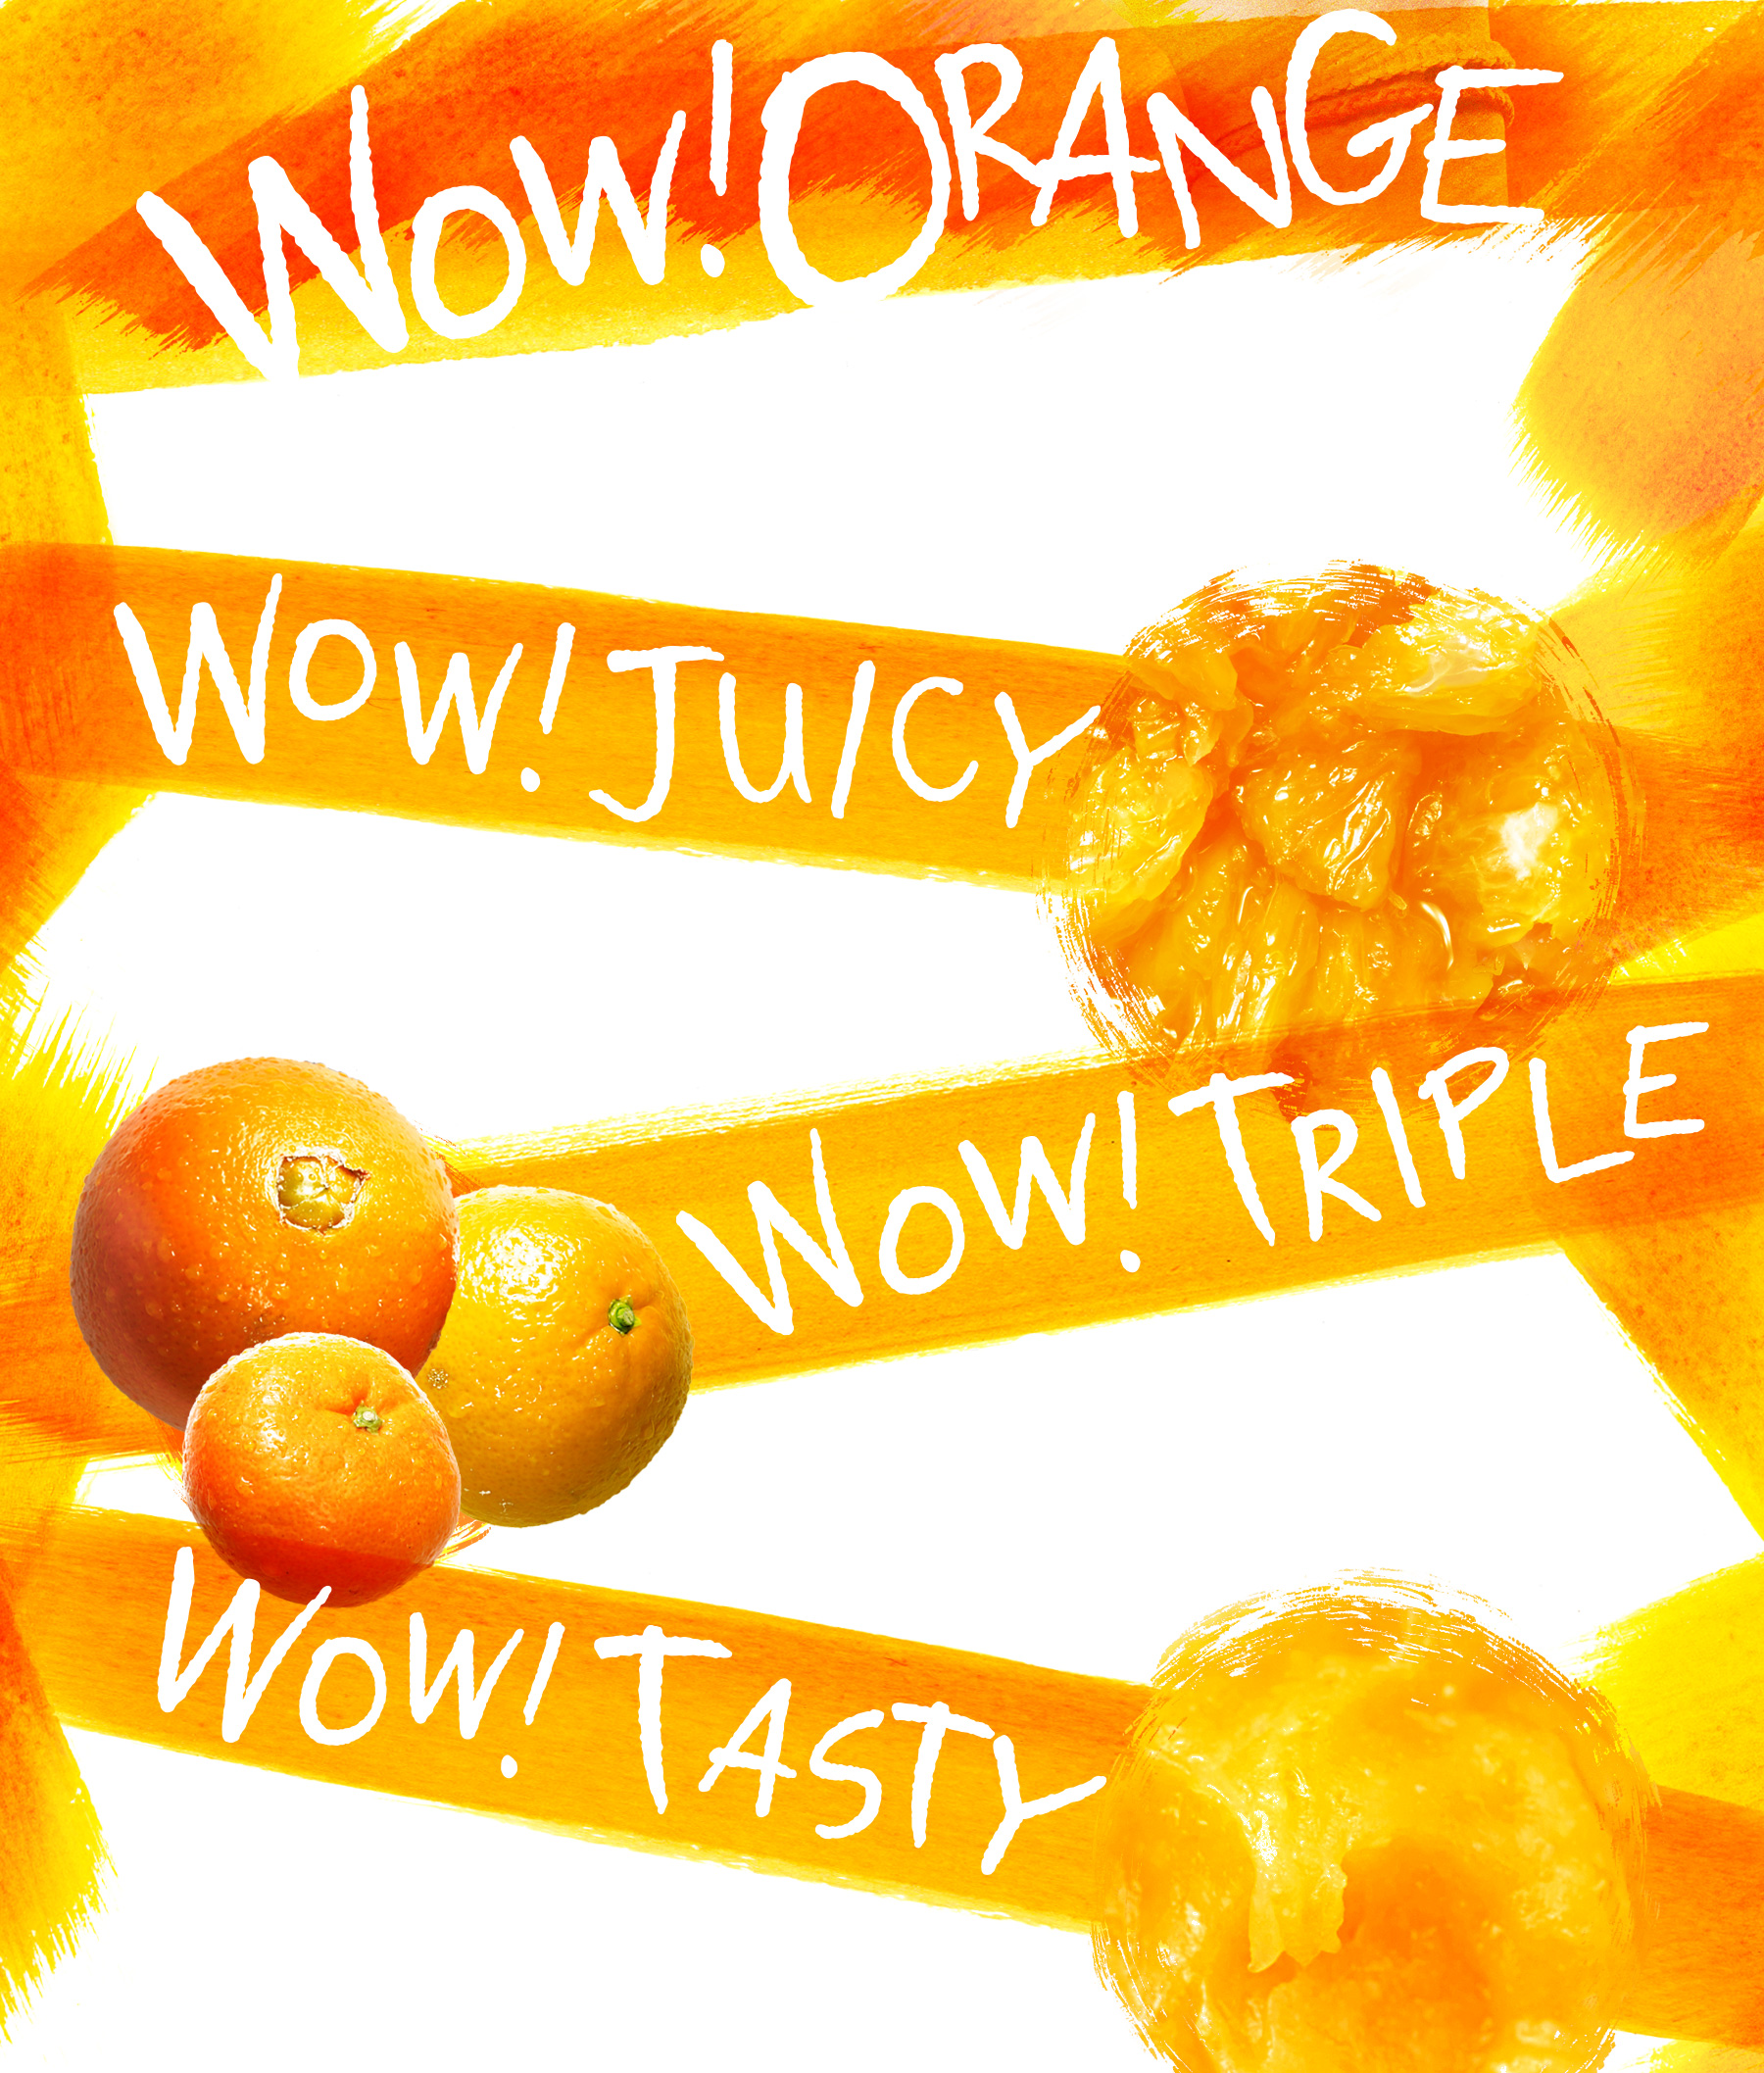 WOW! ORANGE WOW! JUICY WOW! TRIPLE WOW! TASTY